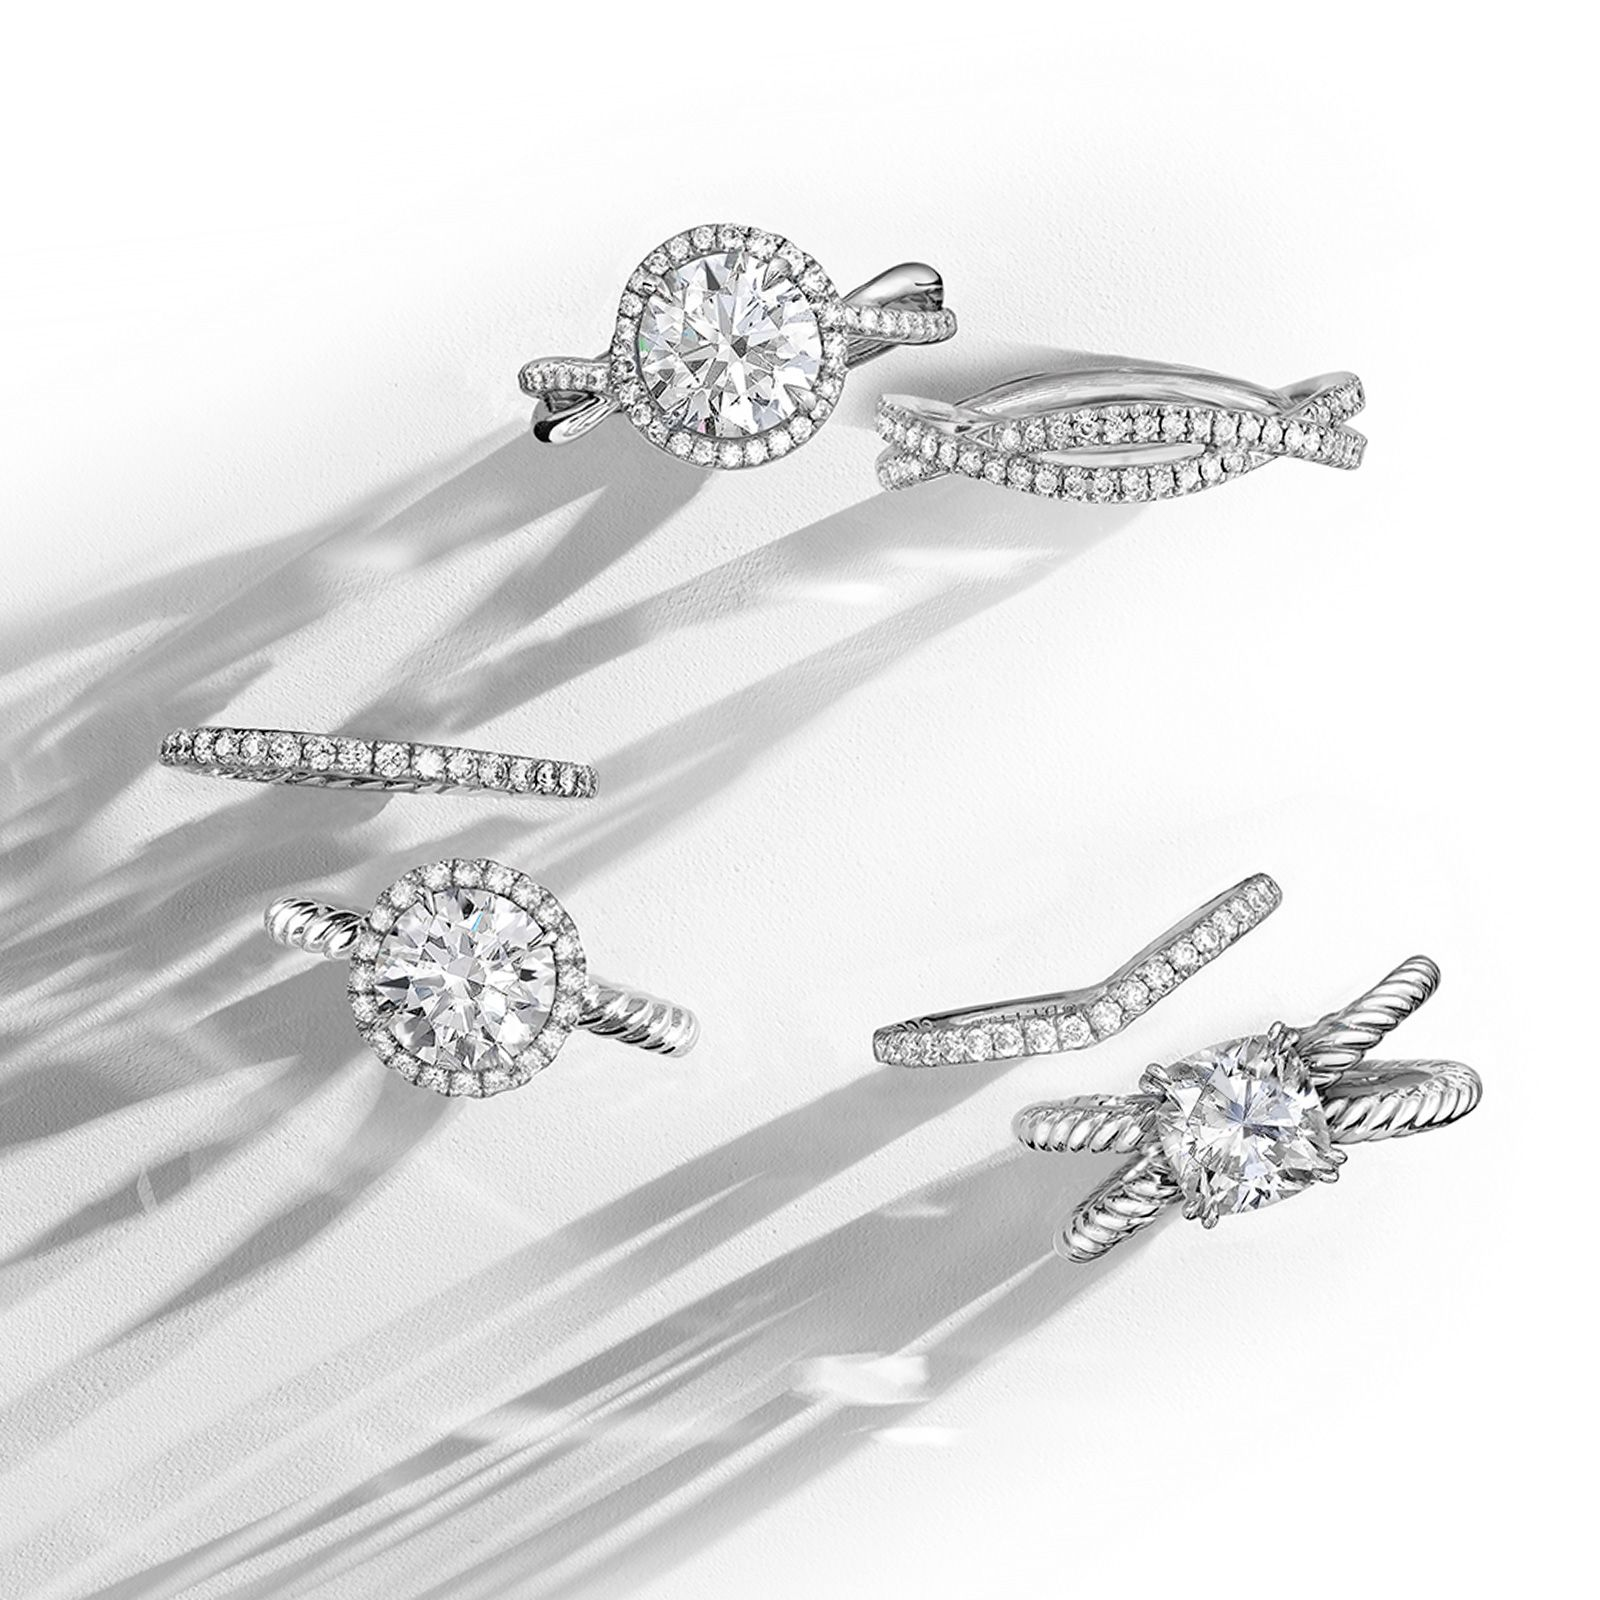 Engagement rings and wedding bands with diamonds in